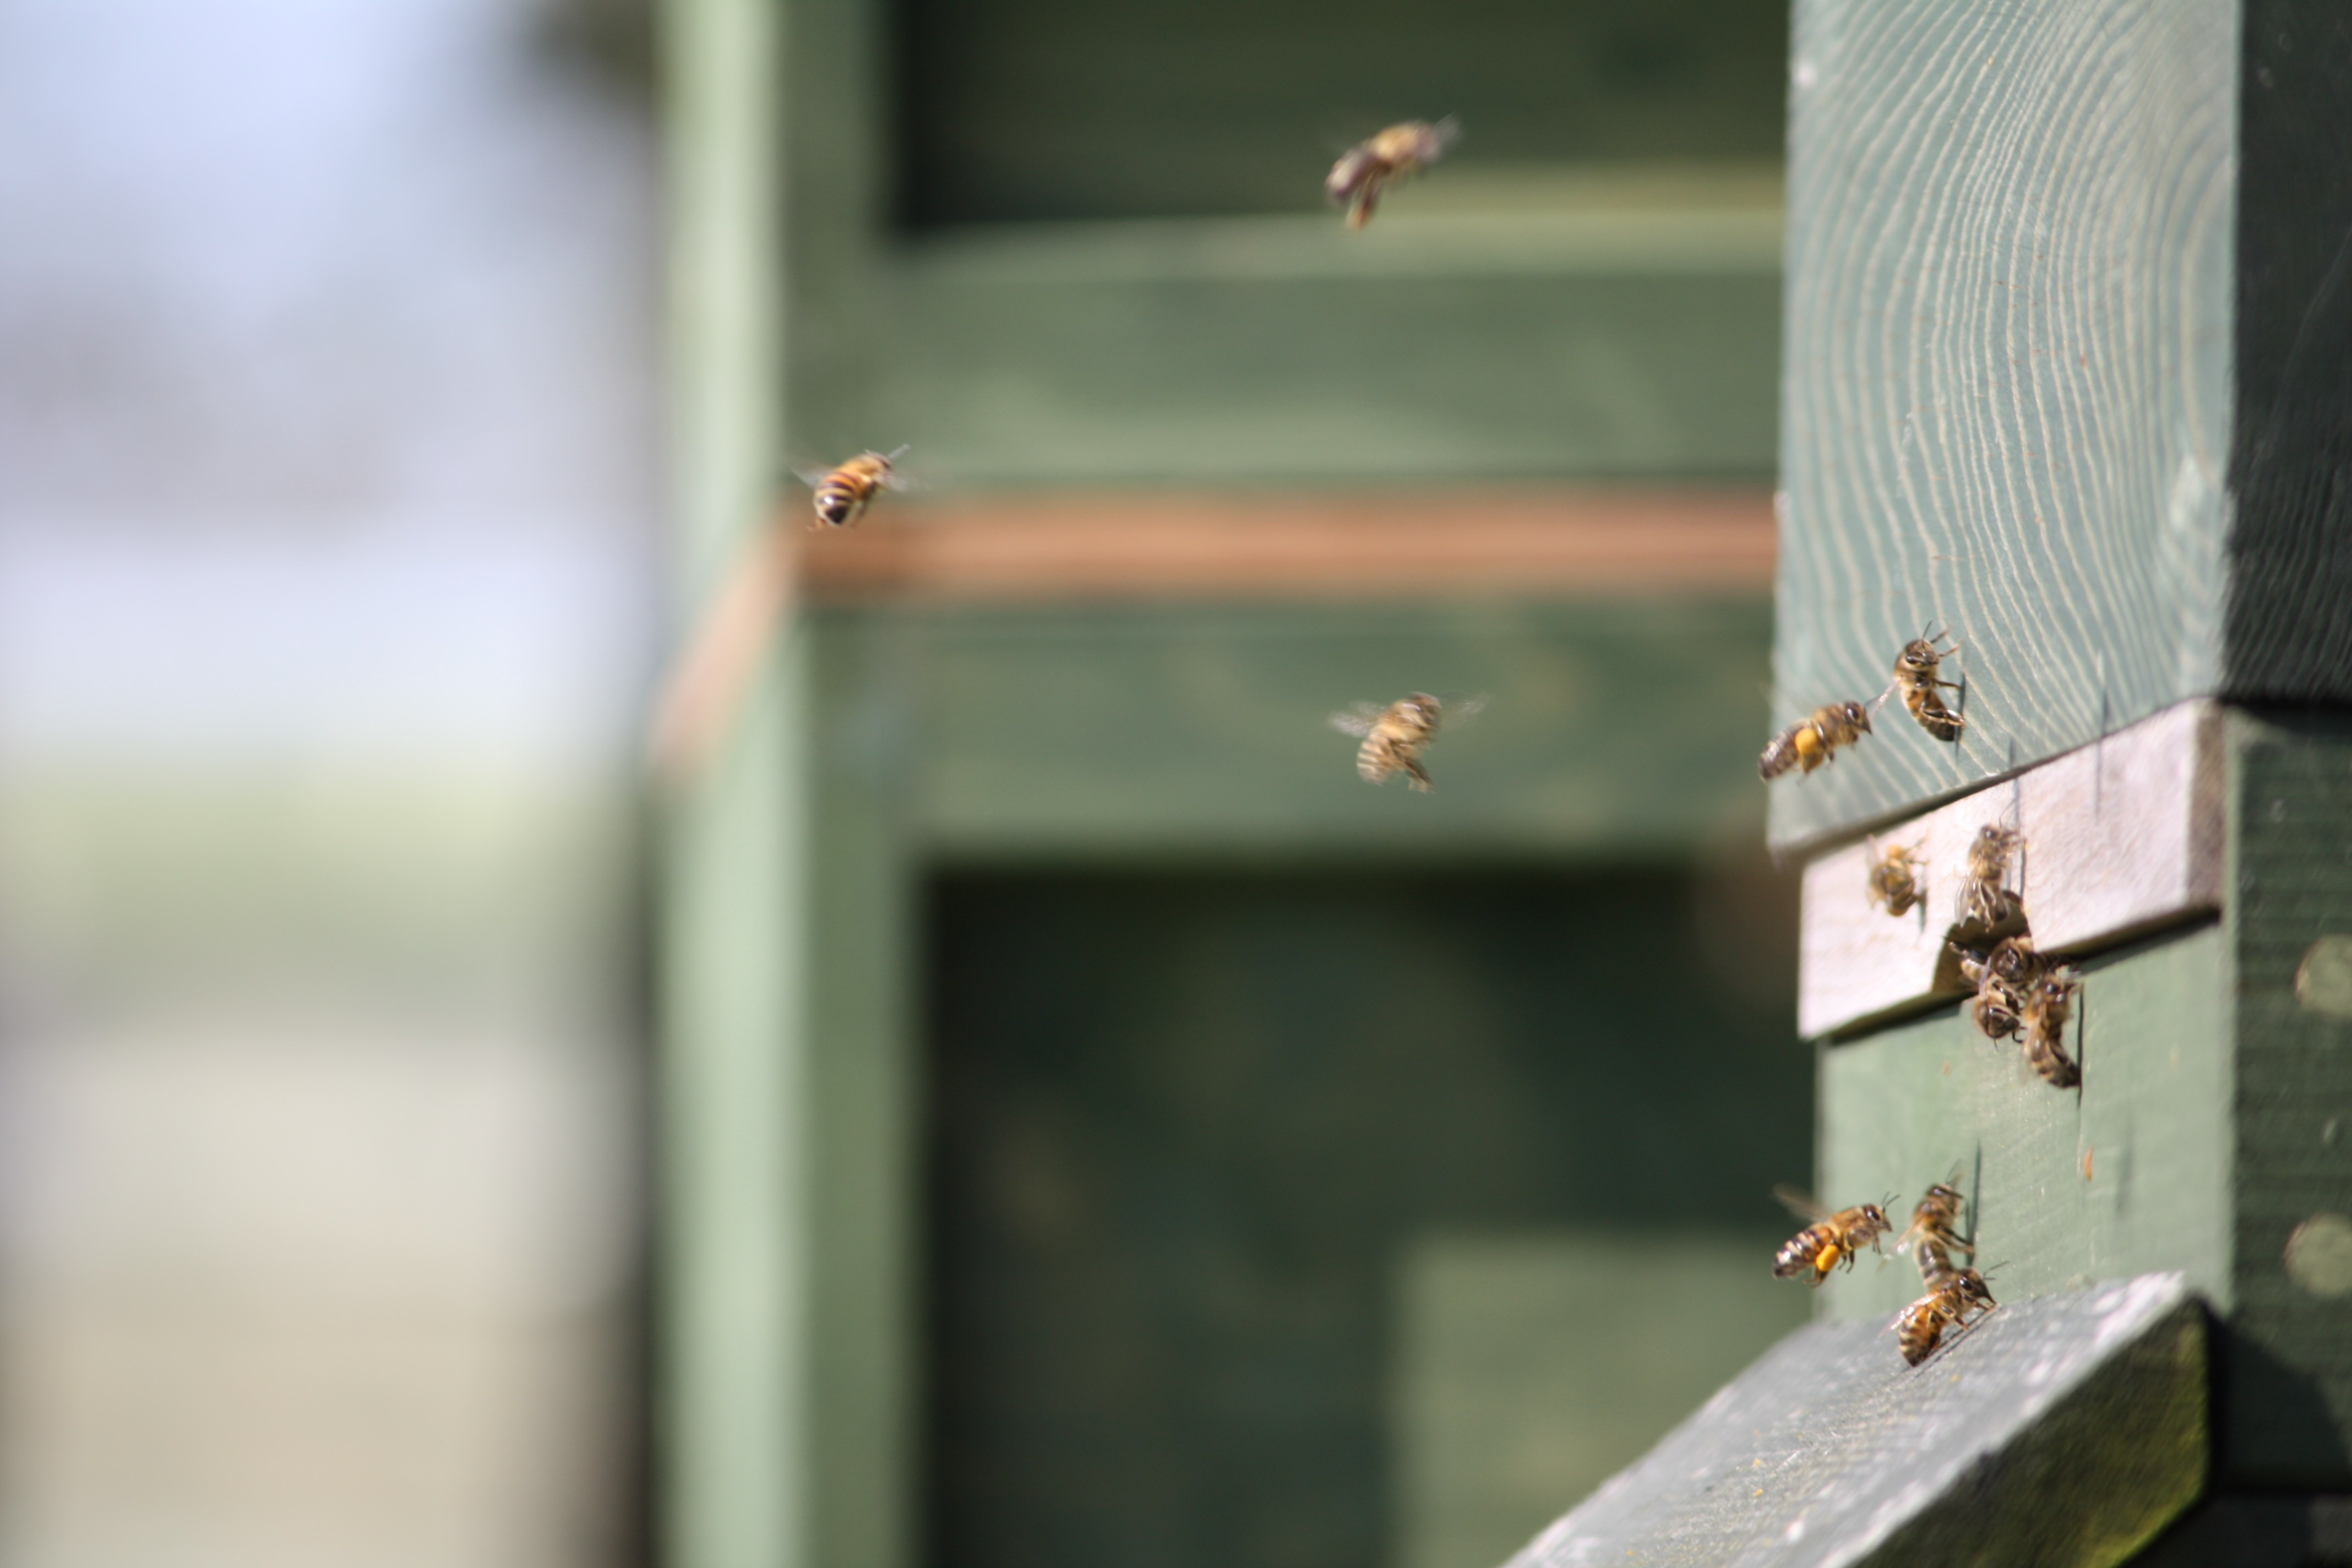 Bees in flight around hive